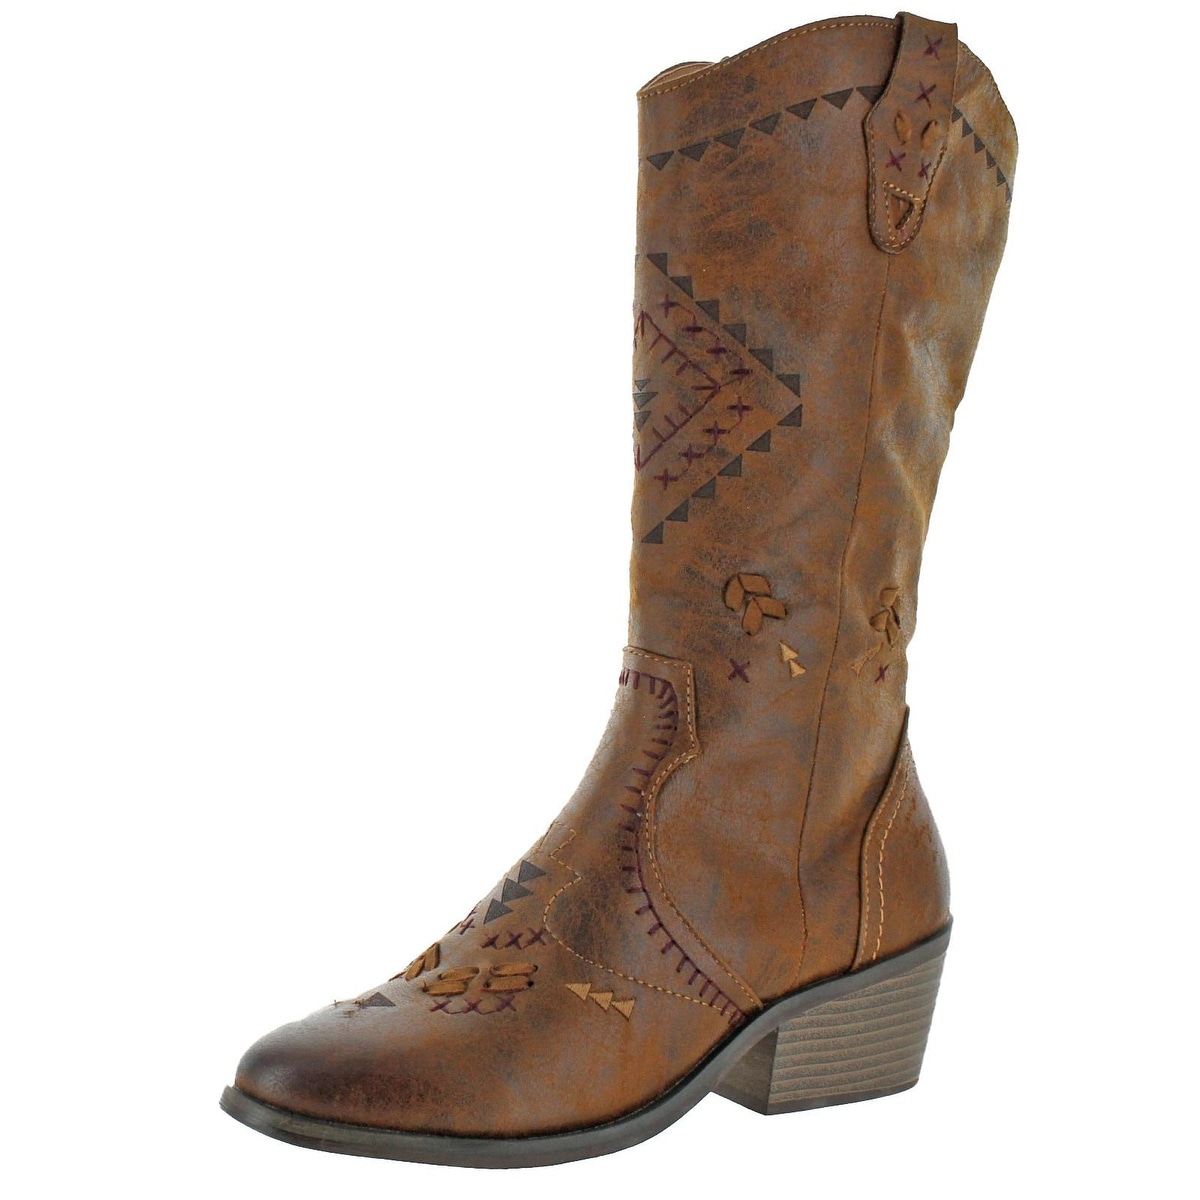 hot products new arrival vast selection Altar'd State by Coolway Womens Cowboy, Western Boots Embroidered Block Heel